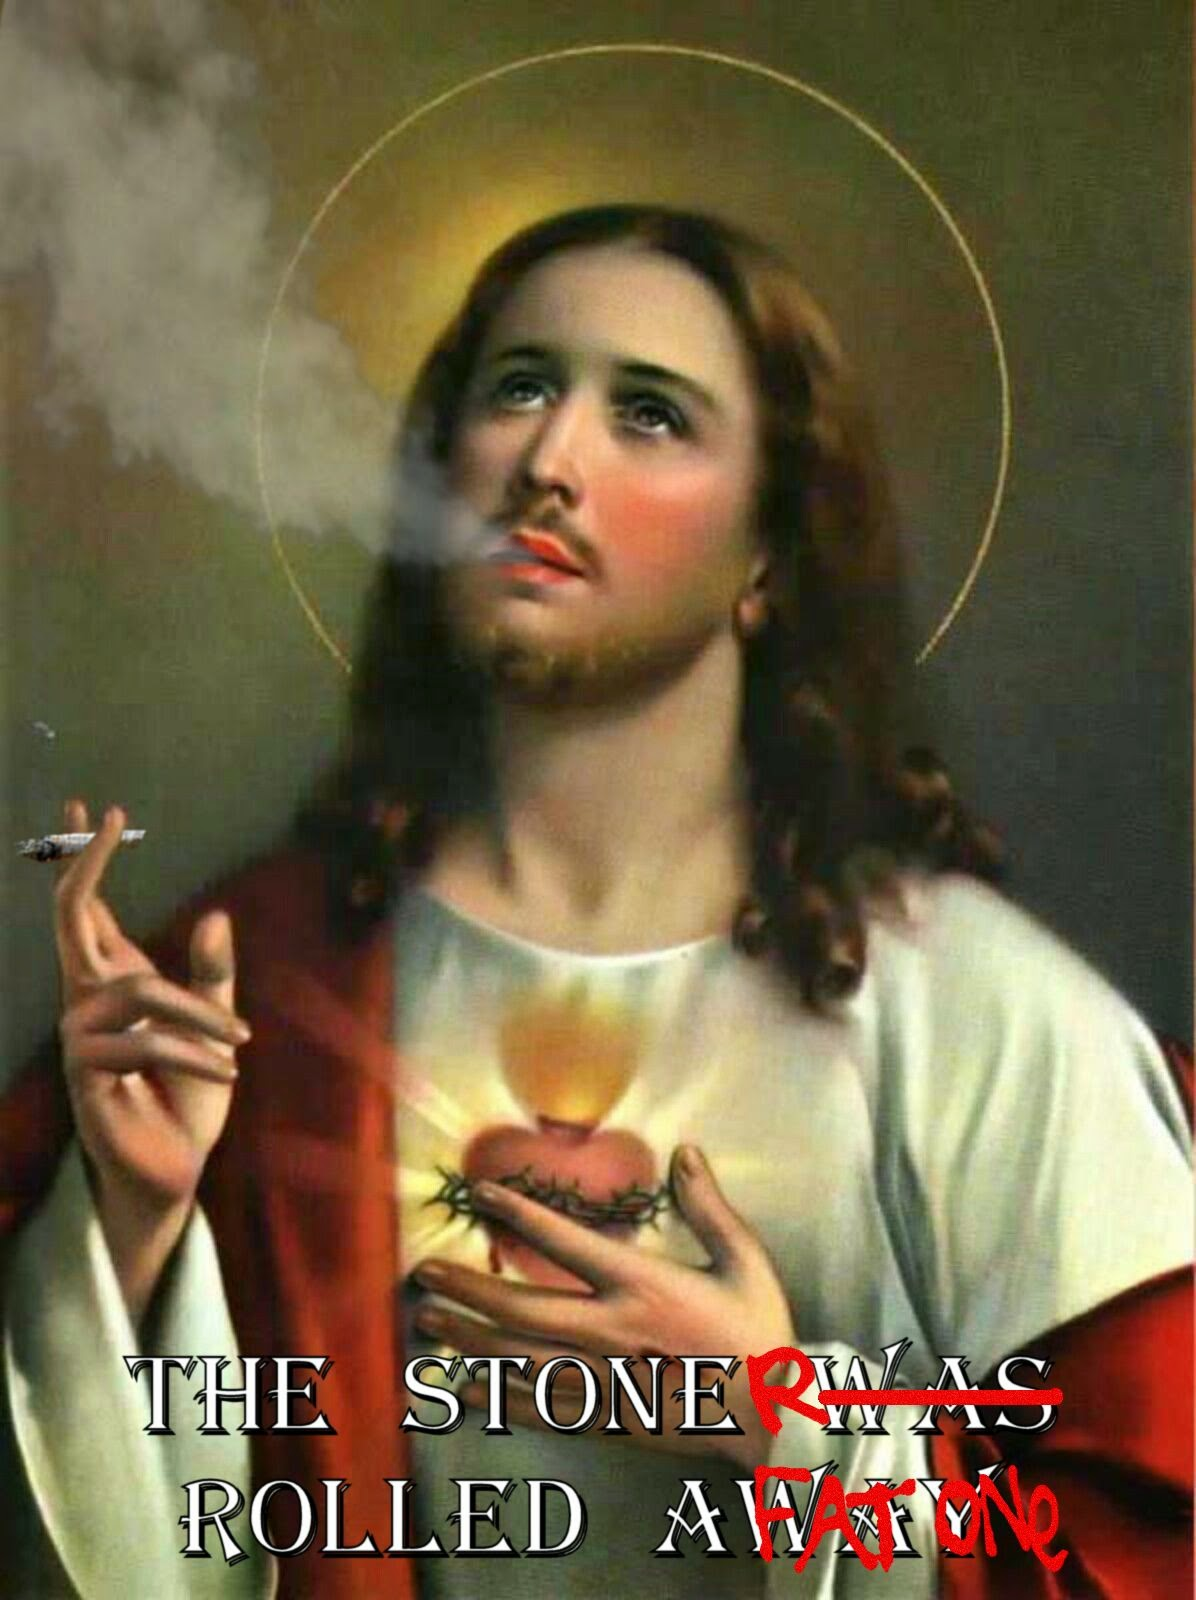 Jesus smoking a joint